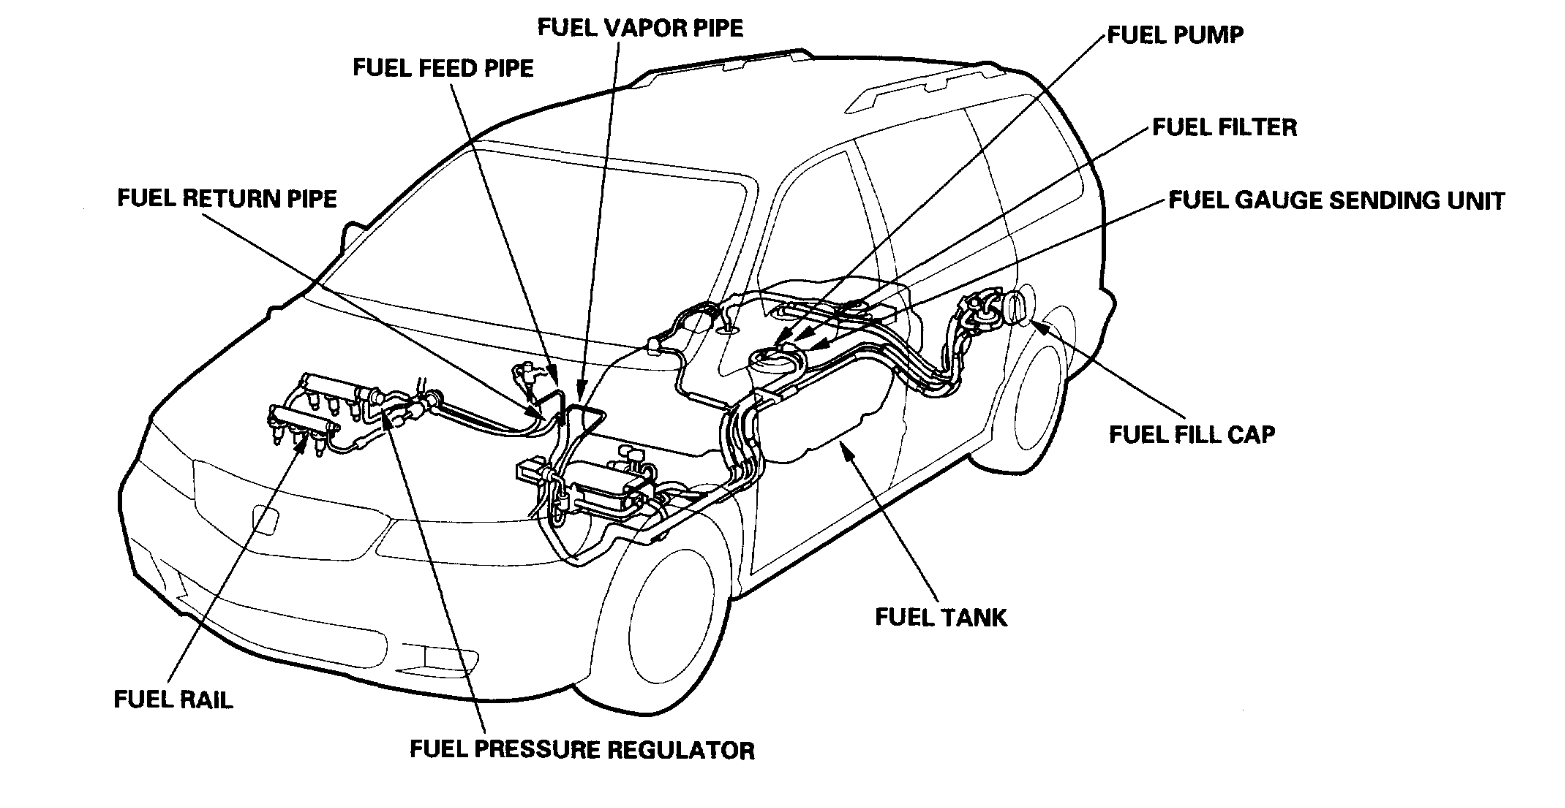 hight resolution of fuel filter location i was wanting to know where the fuel filter 2002 gmc fuel filter